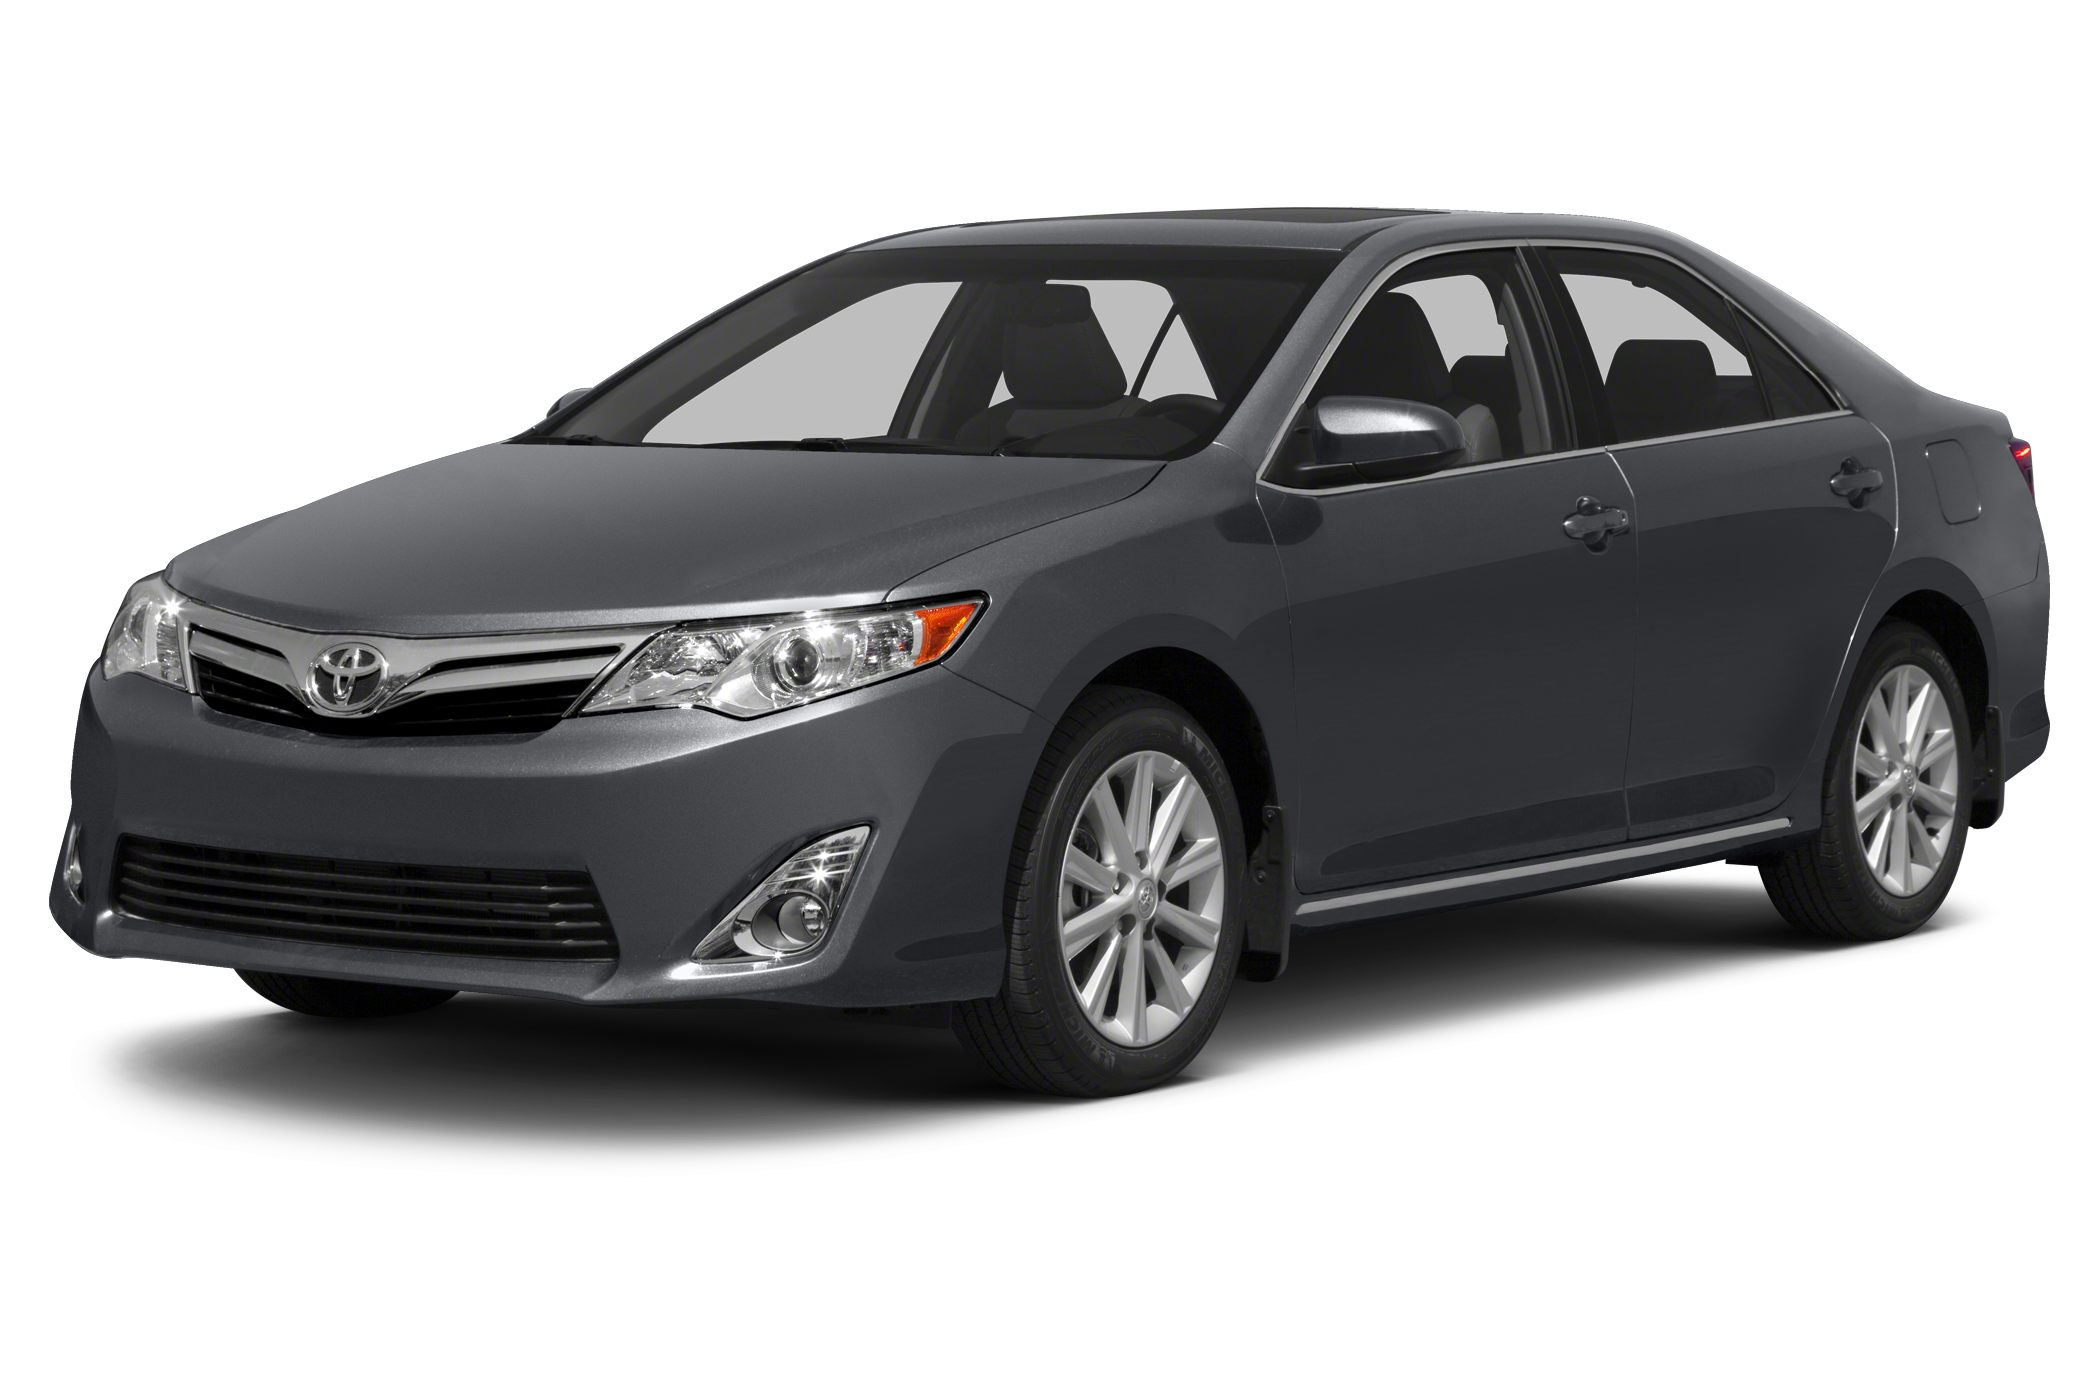 2014 toyota camry xle 4dr sedan specs and prices 2014 toyota camry xle 4dr sedan specs and prices